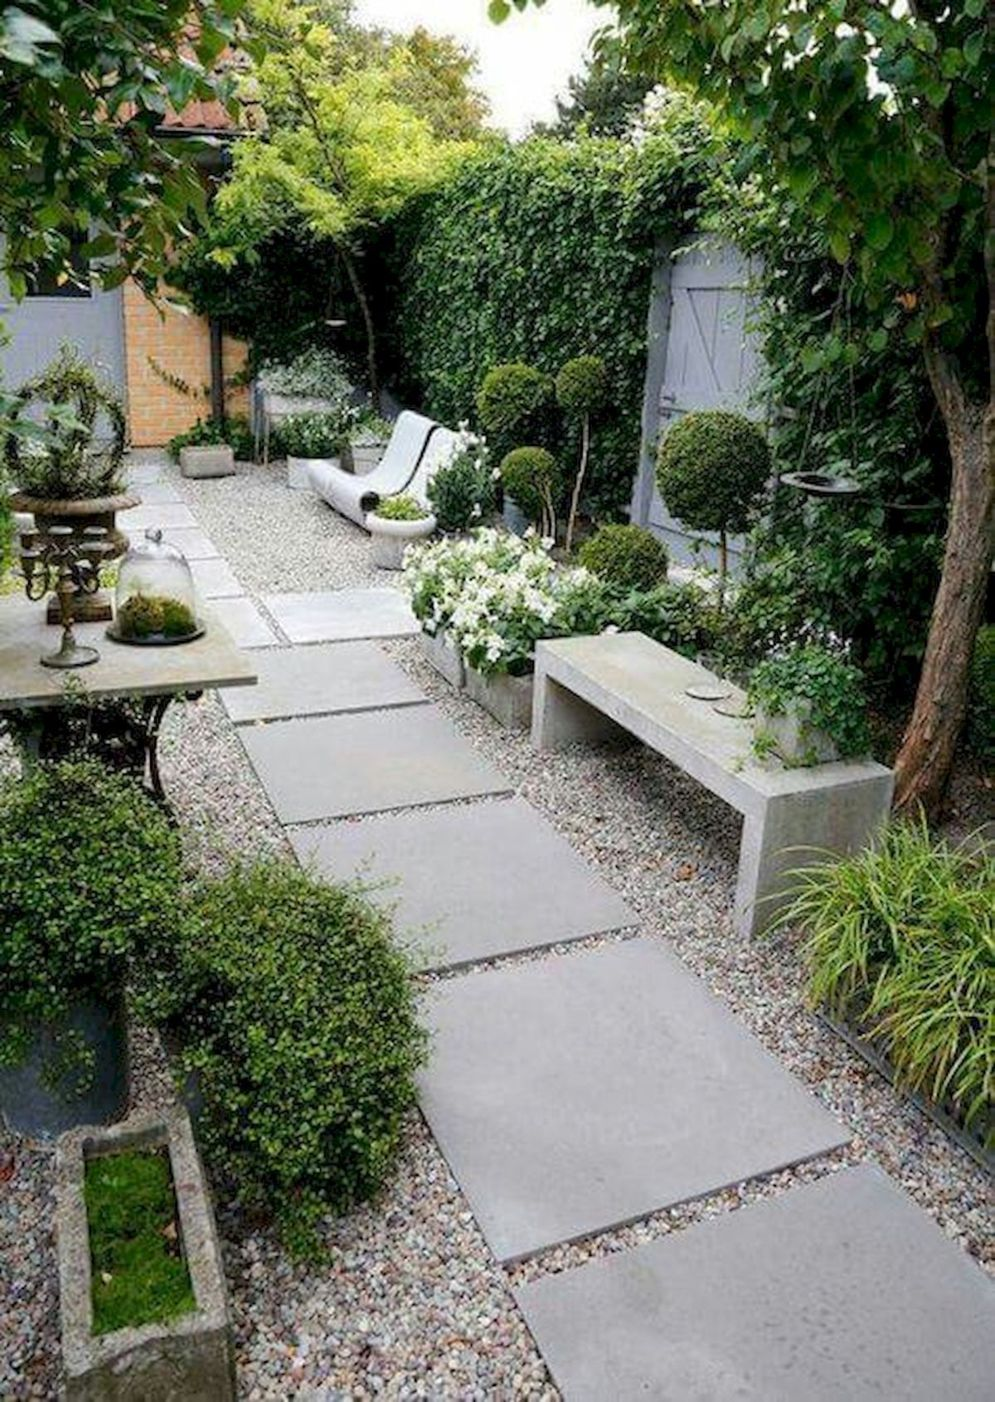 Green outdoor ideas with calming vibes from Zen garden style showing harmonious and balanced various natural elements Image 26